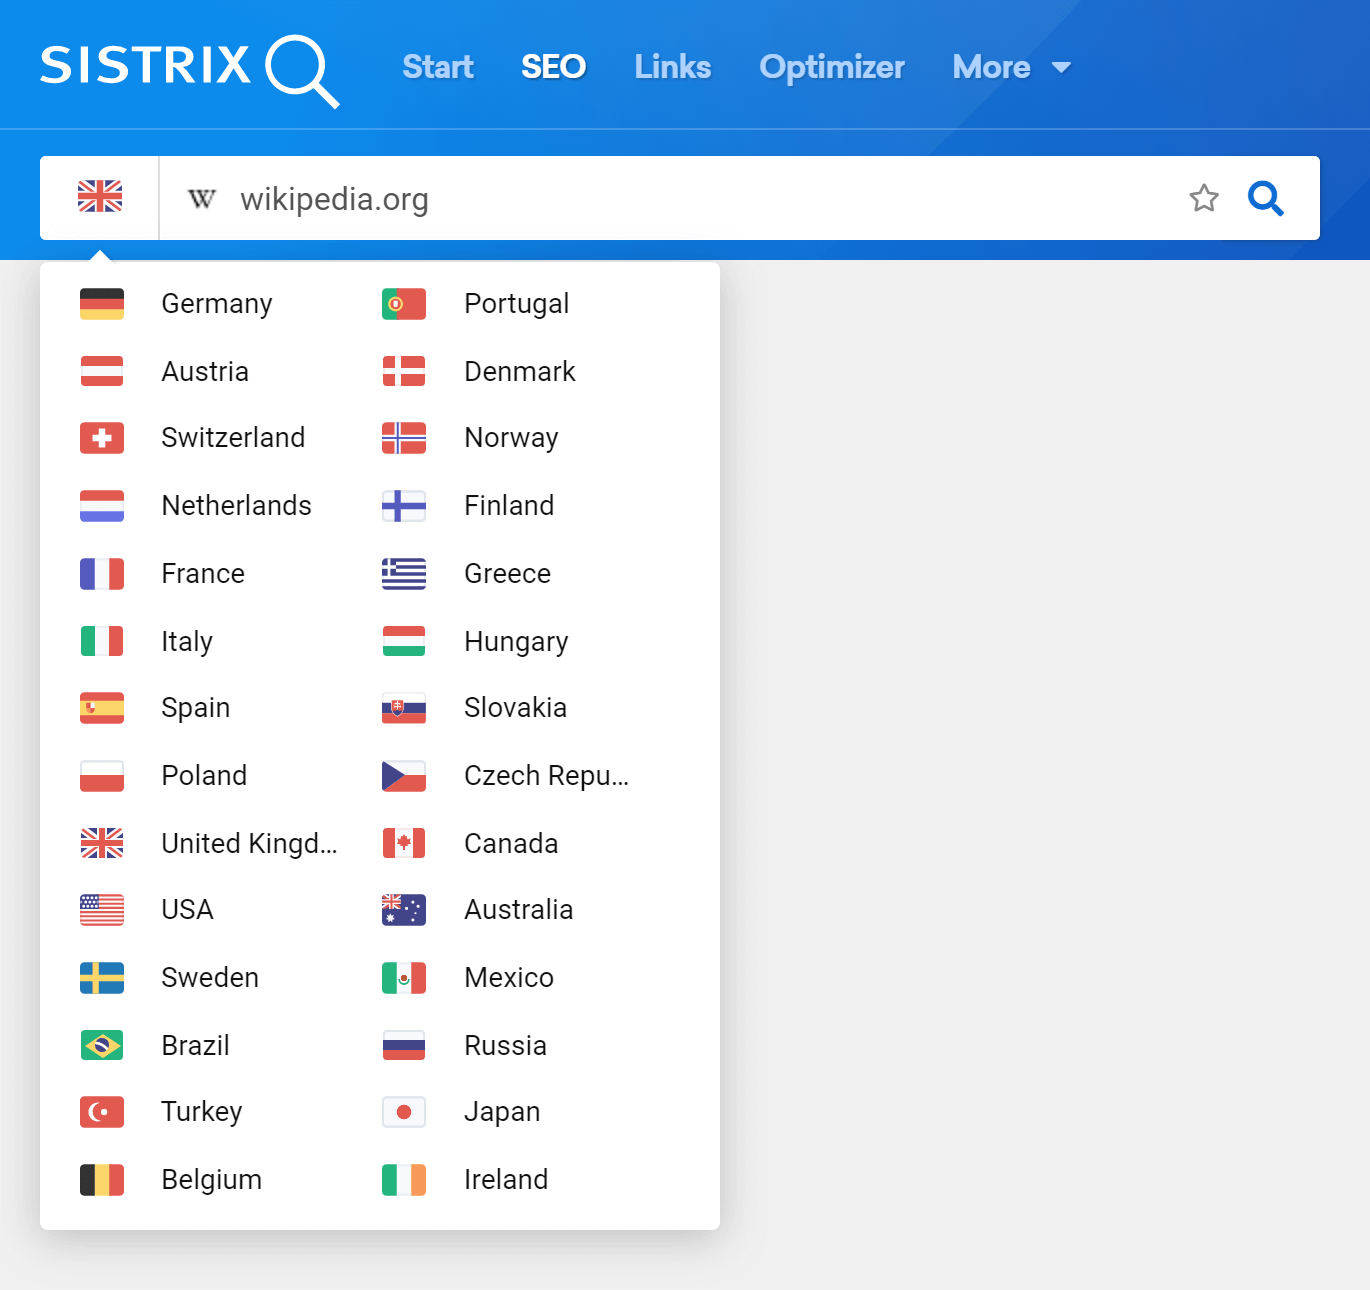 Change the flag in front of the domain to analyze the data for that specific Country in the SÍSTRIX Toolbox